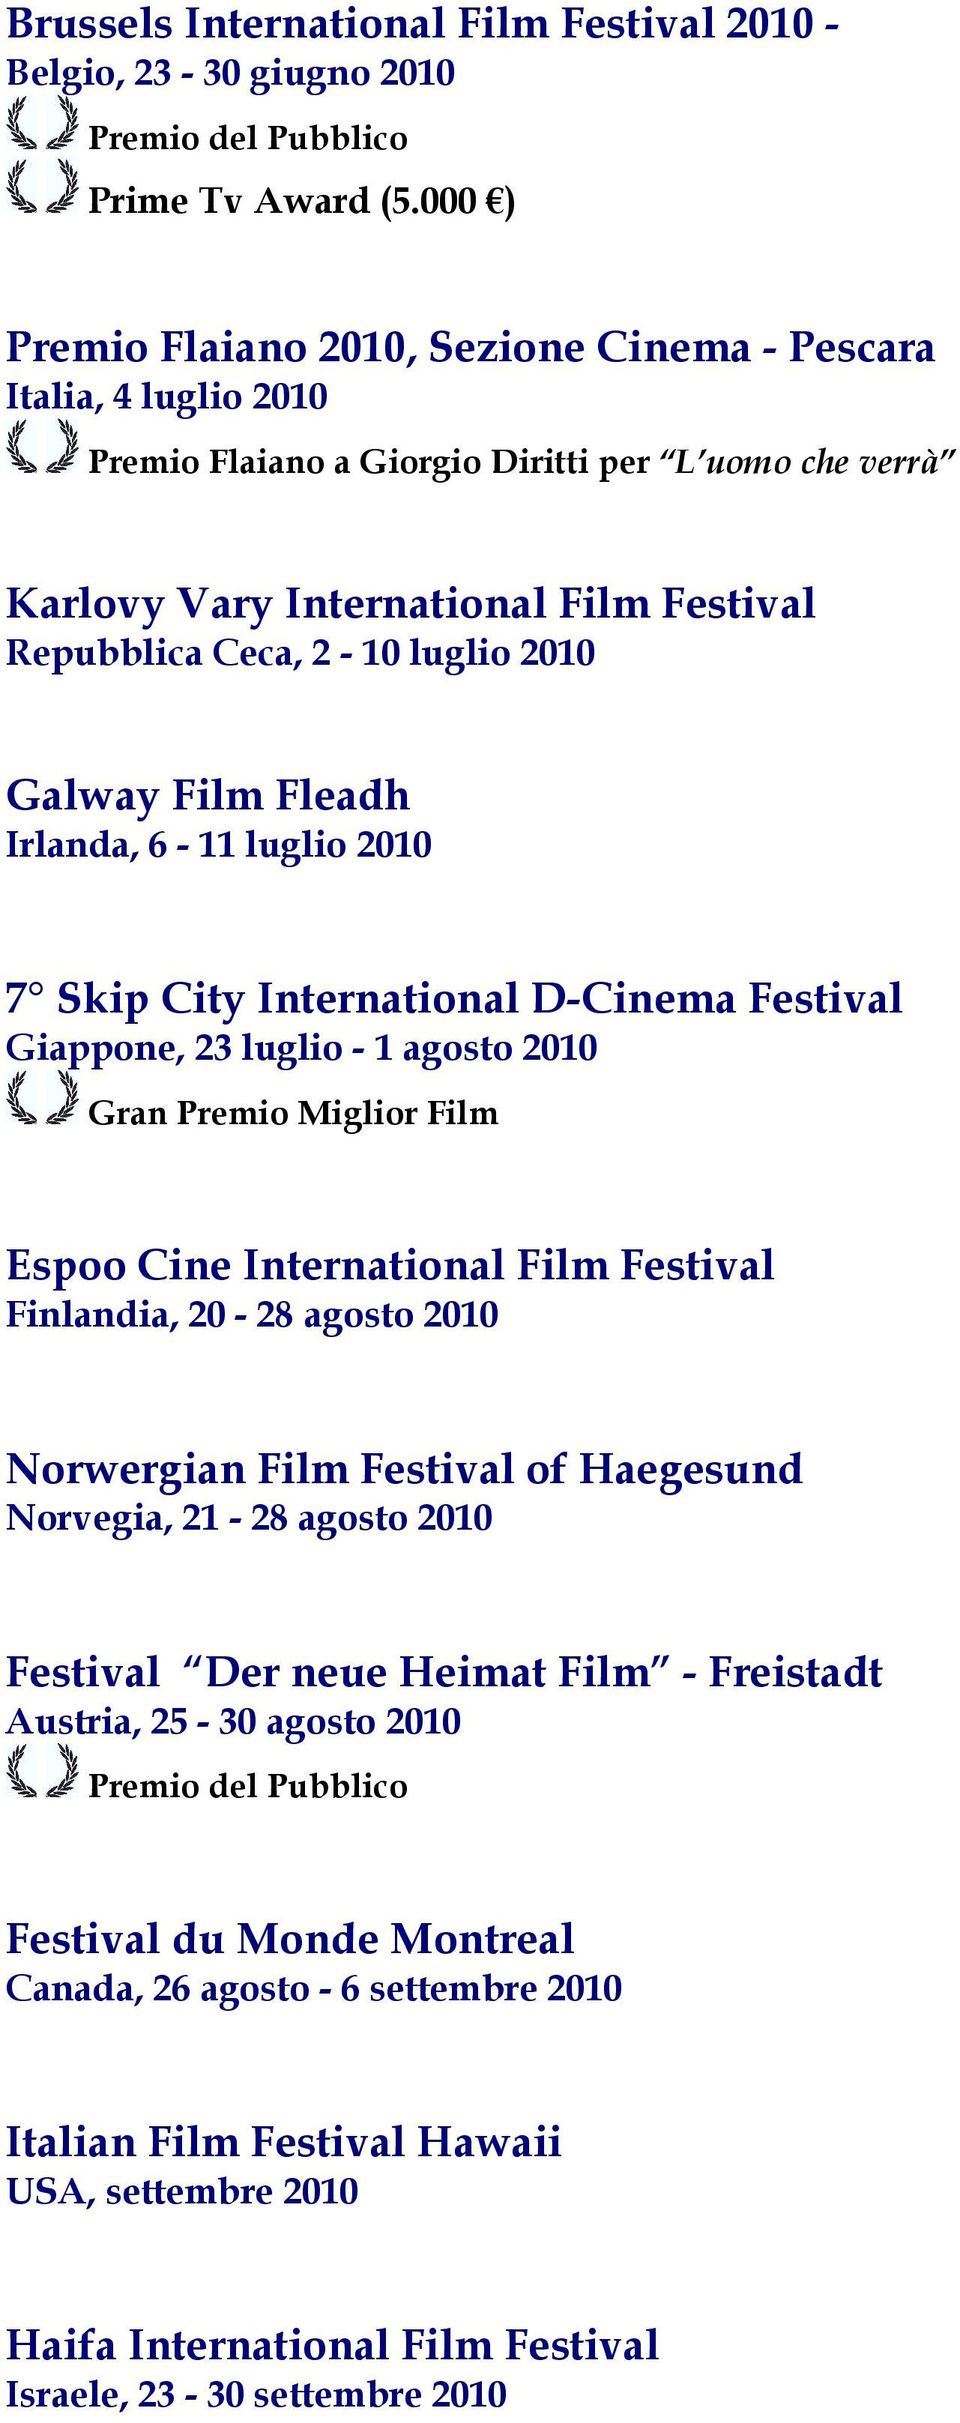 2010 Galway Film Fleadh Irlanda, 6-11 luglio 2010 7 Skip City International D-Cinema Festival Giappone, 23 luglio - 1 agosto 2010 Gran Premio Miglior Film Espoo Cine International Film Festival